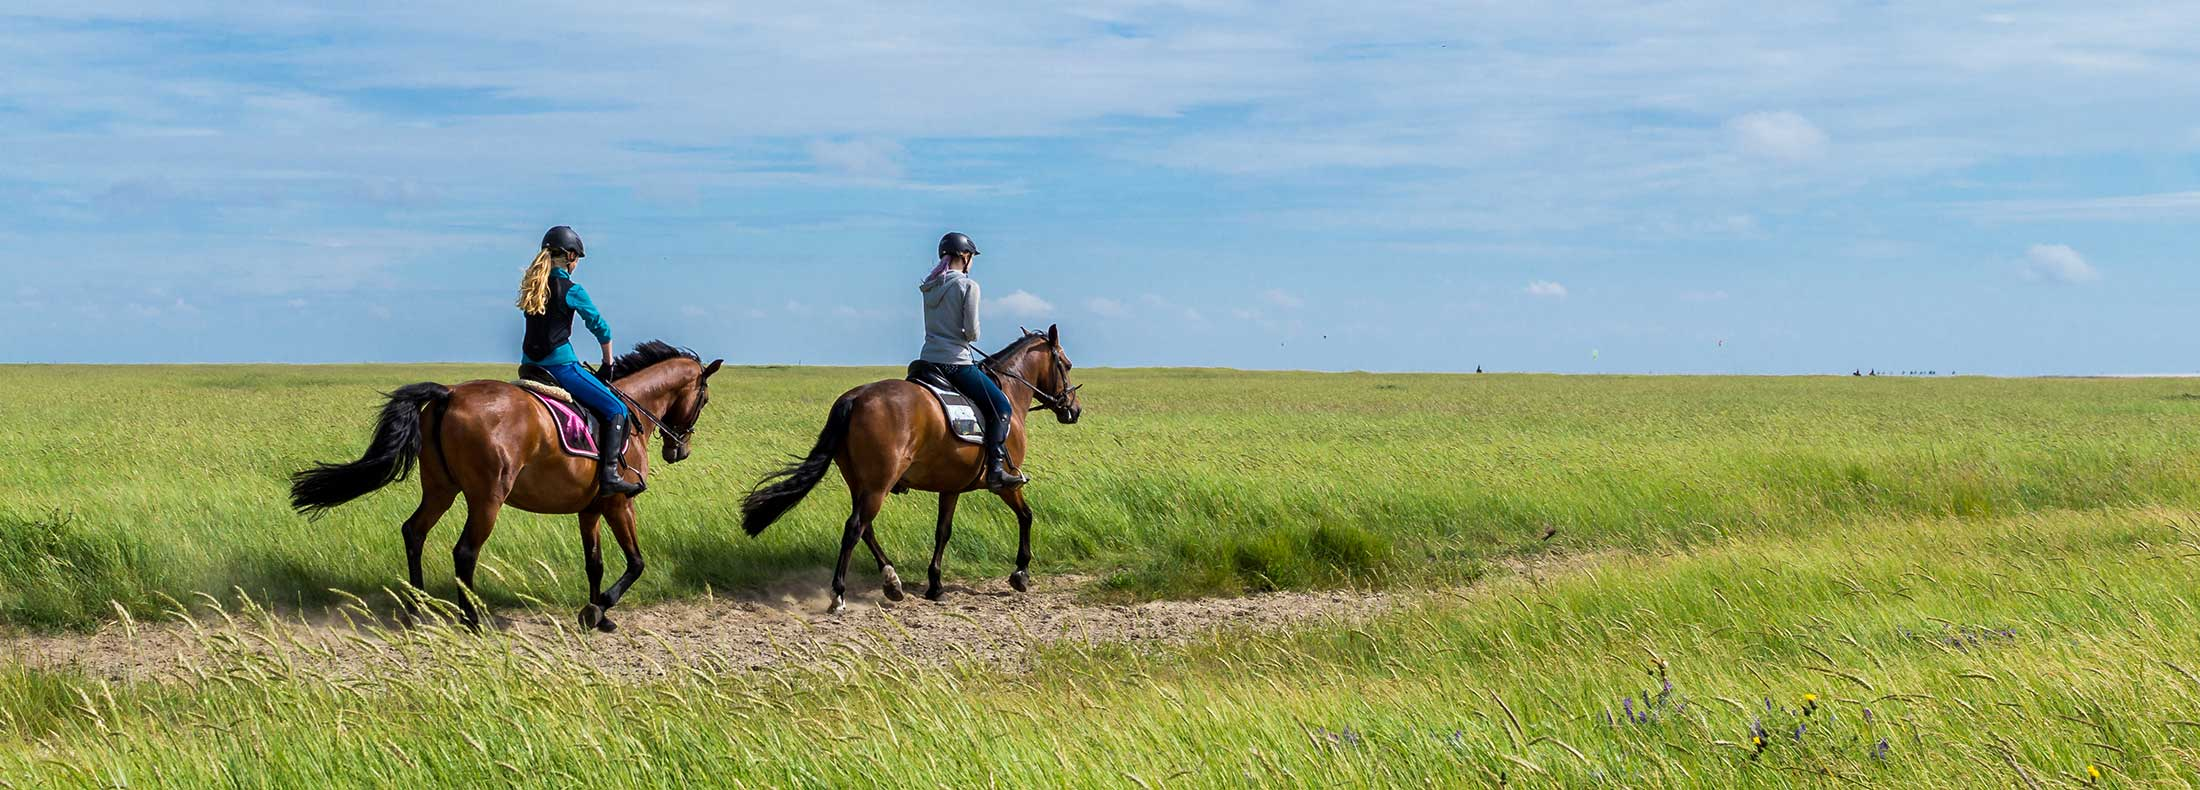 Two riders on horses in windy field